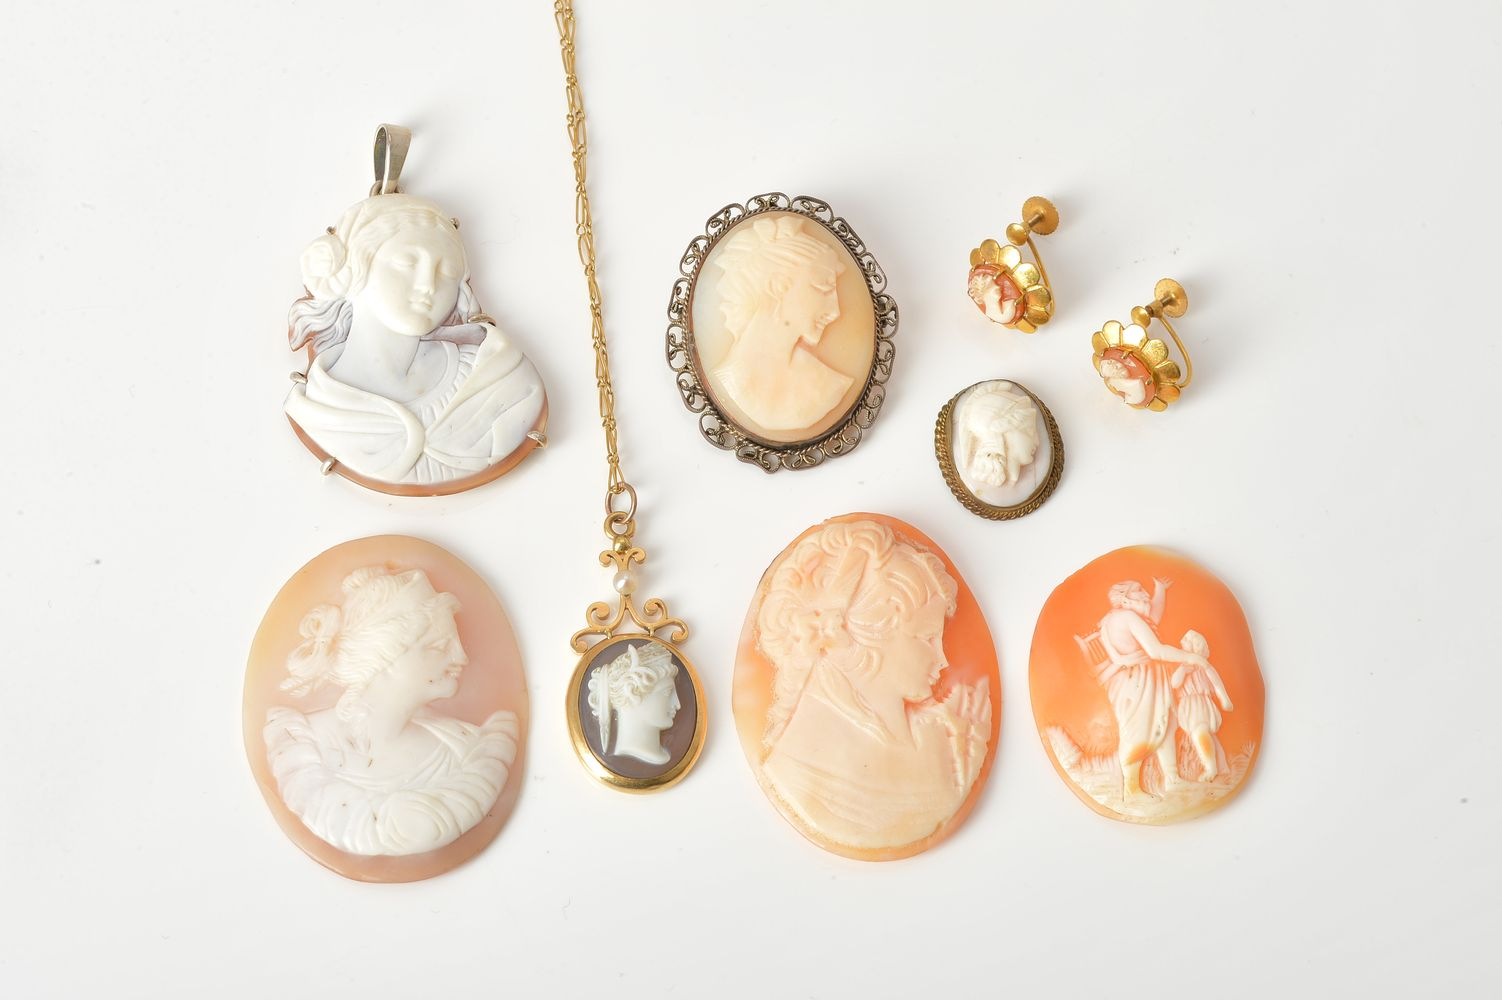 Lot 848 - A group of cameo jewellery